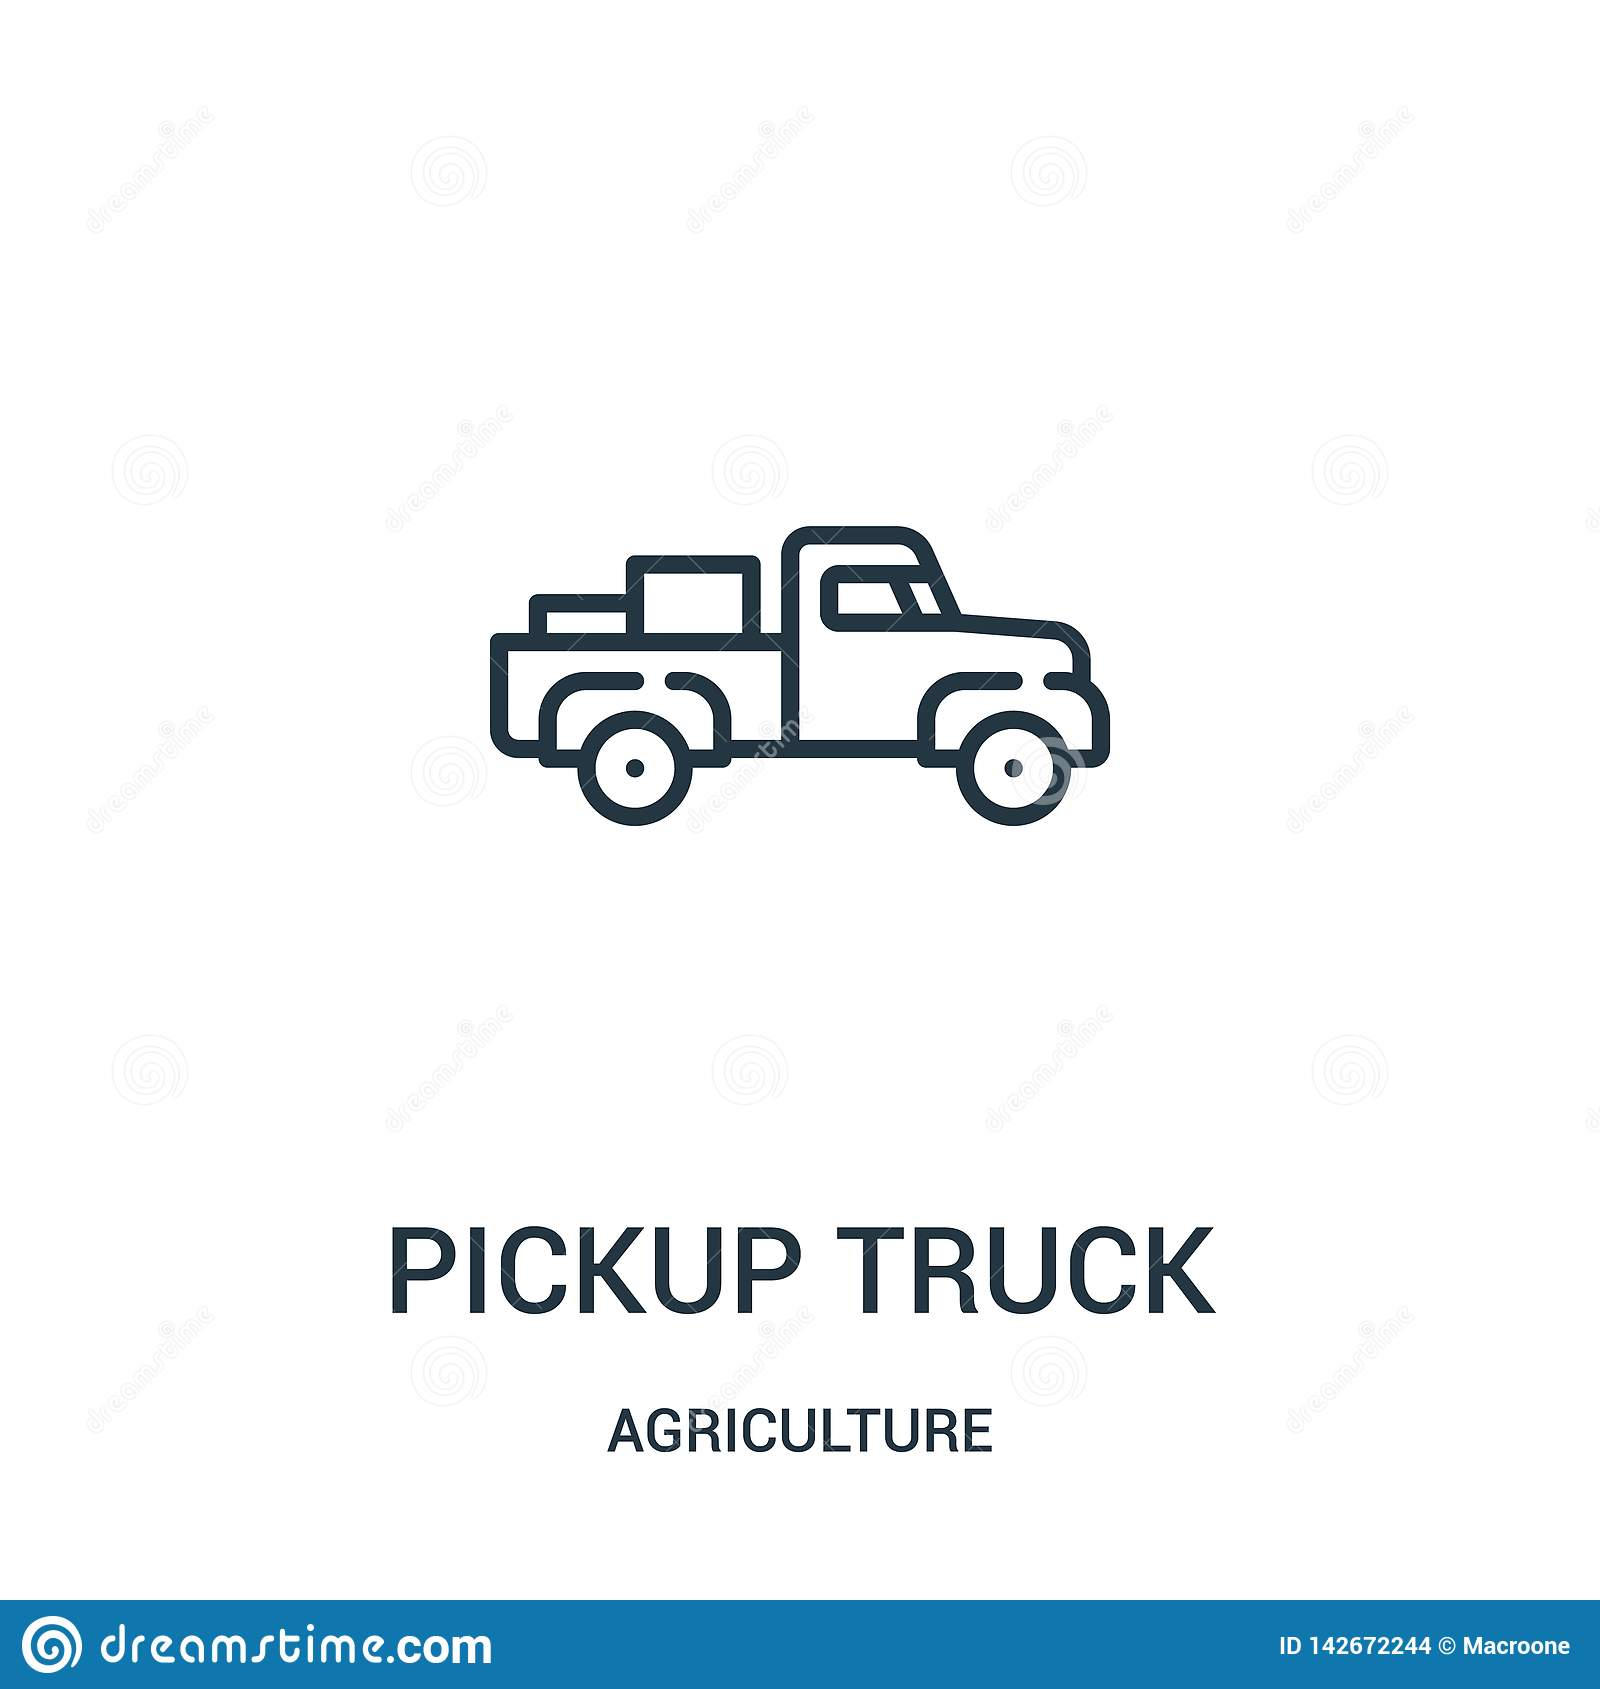 pickup truck icon vector from agriculture collection. Thin line pickup truck outline icon vector illustration. Linear symbol for